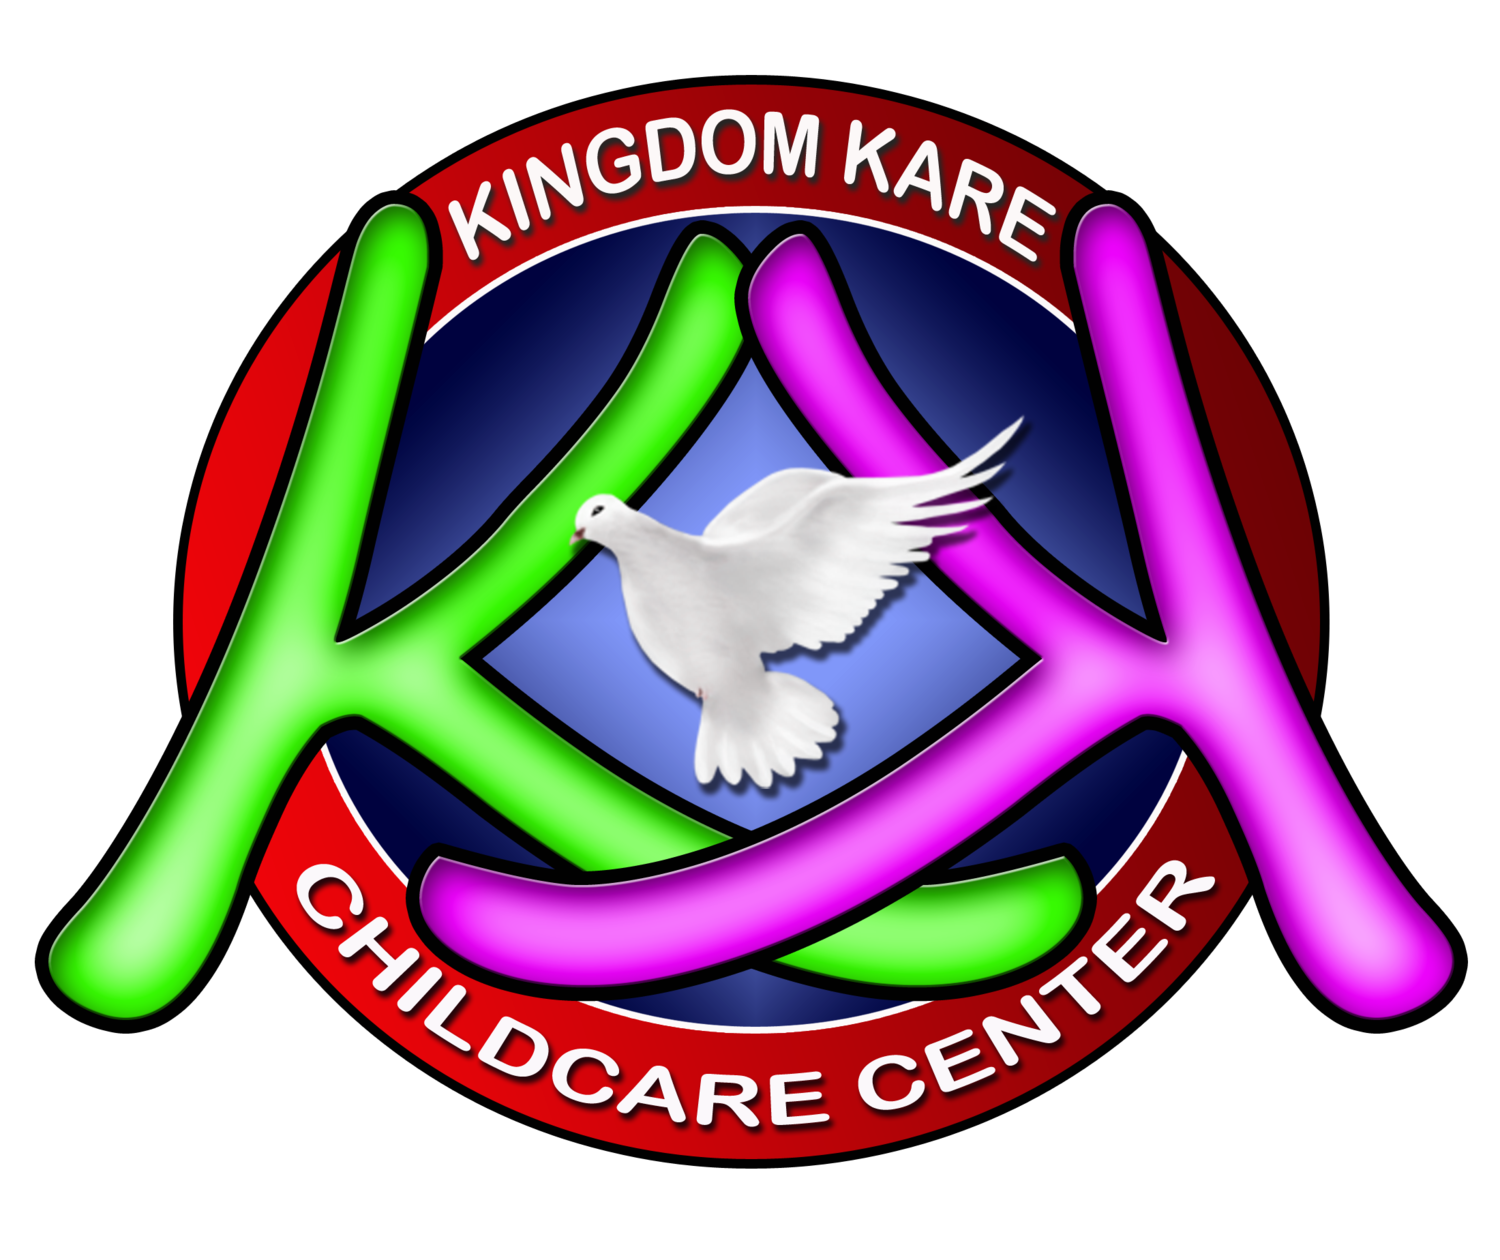 Kingdom Kare Childcare Ctr.